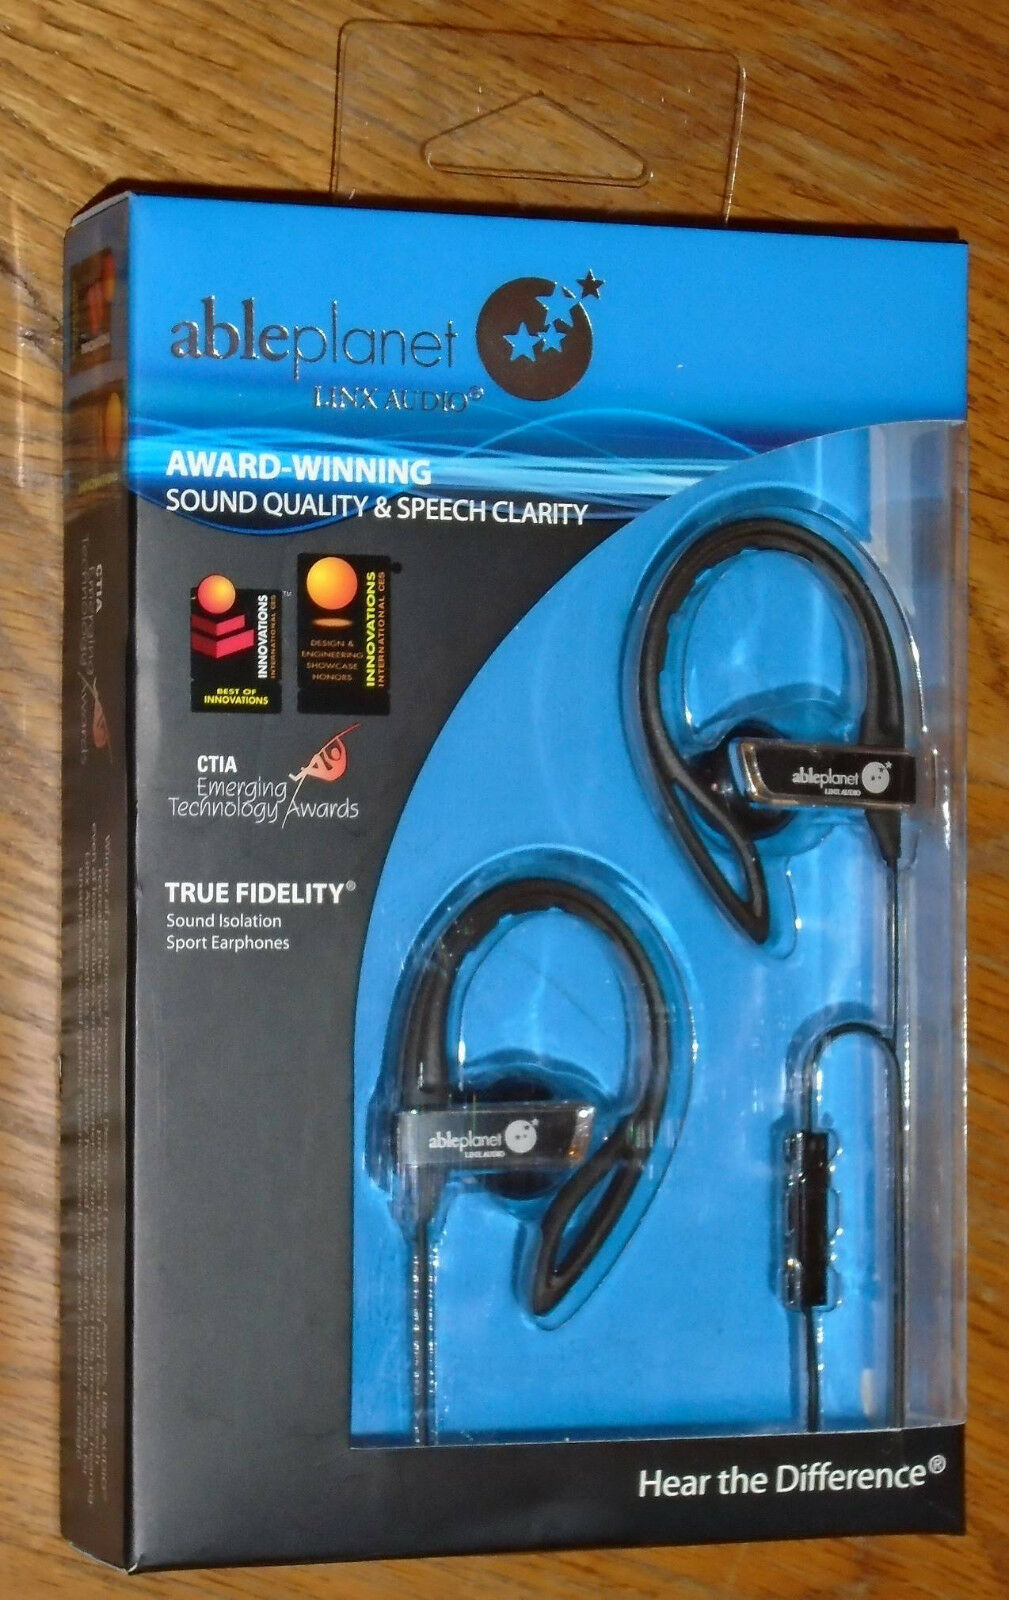 Able Planet: Ableplanet TRUE FIDELITY Sound Isolation Sport Earphones